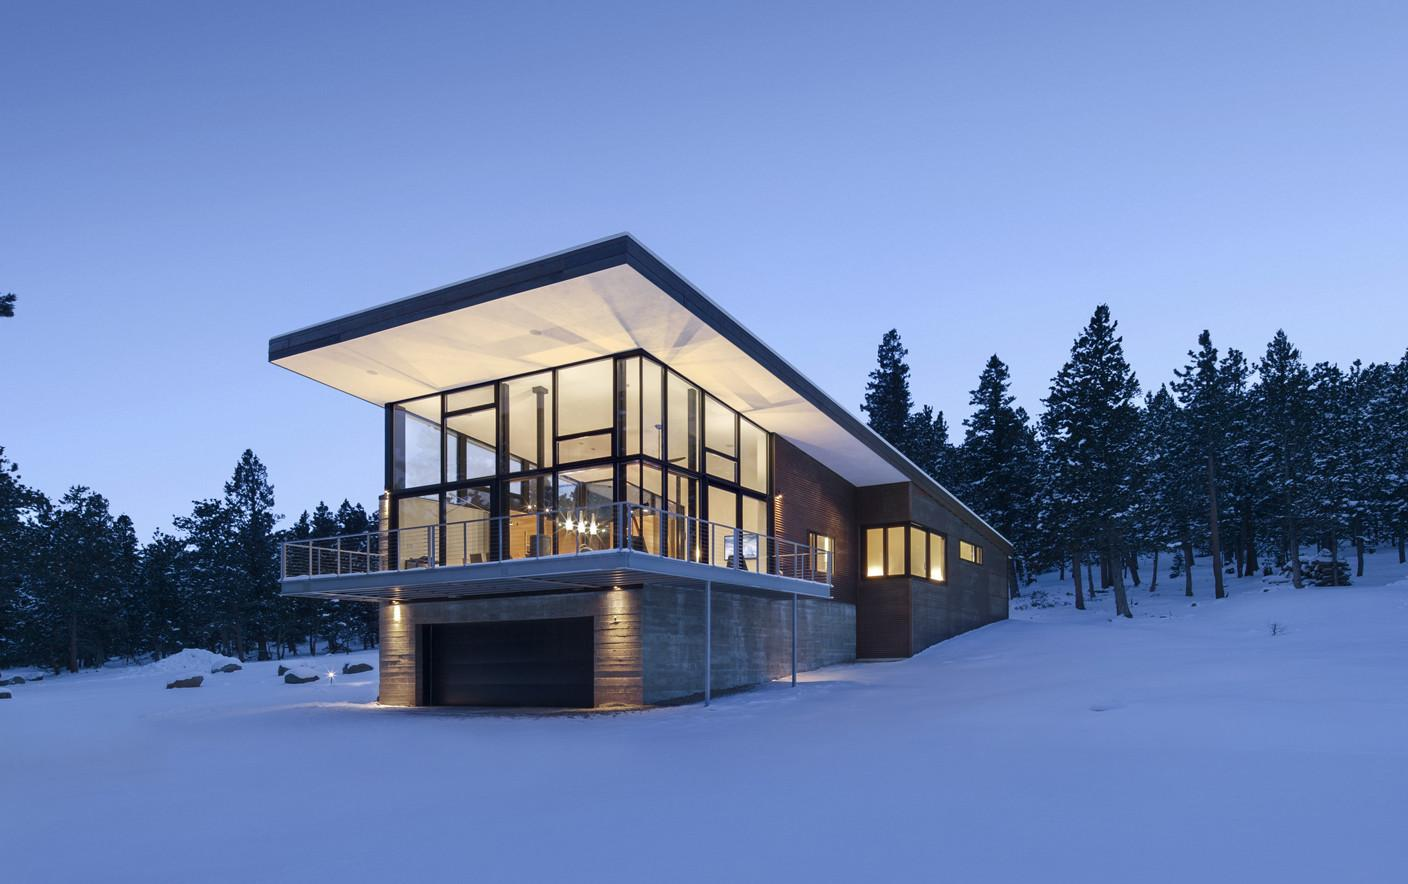 Colorado Architects Arch11 Design Luxury Sustainable